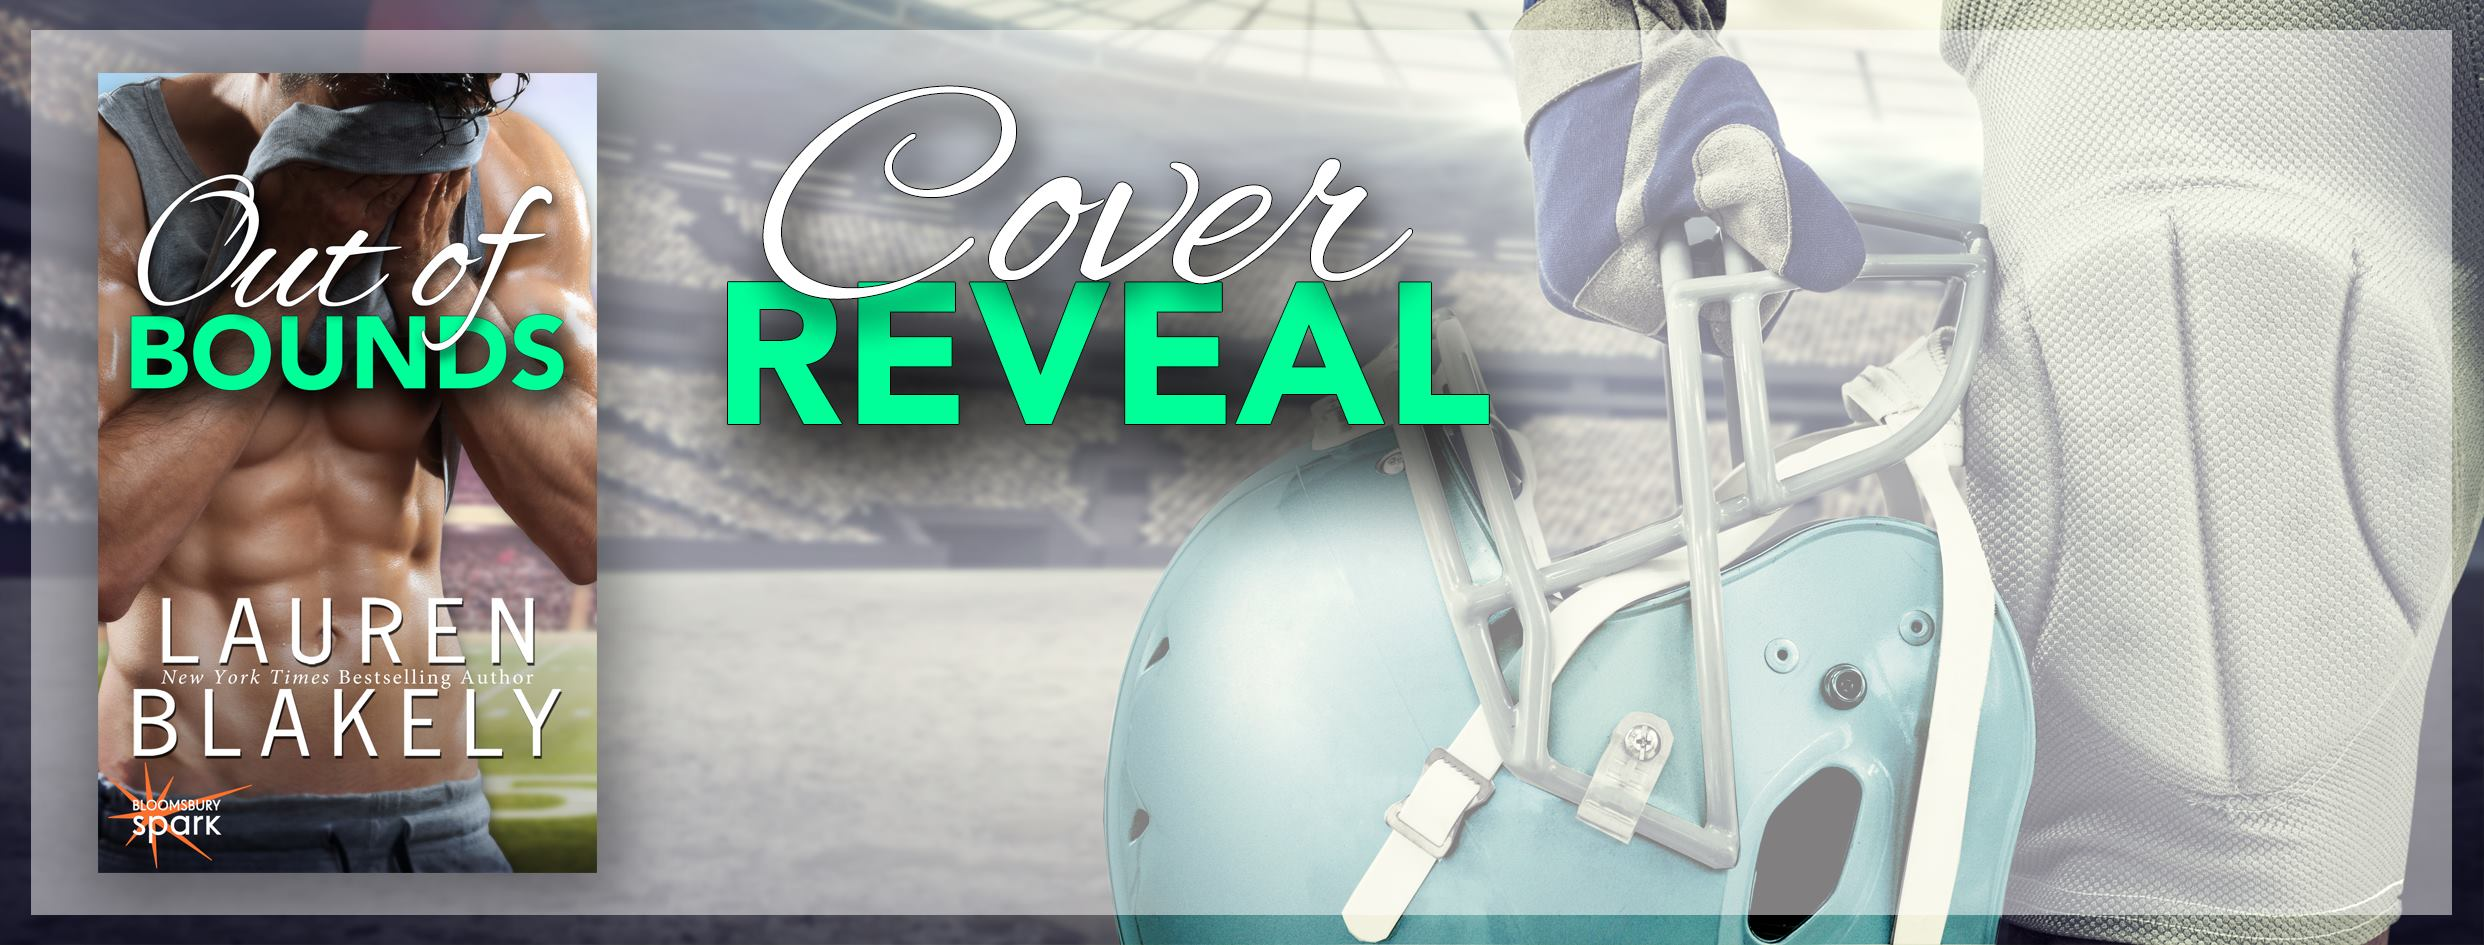 Out of Bounds Cover Reveal by Lauren Blakely